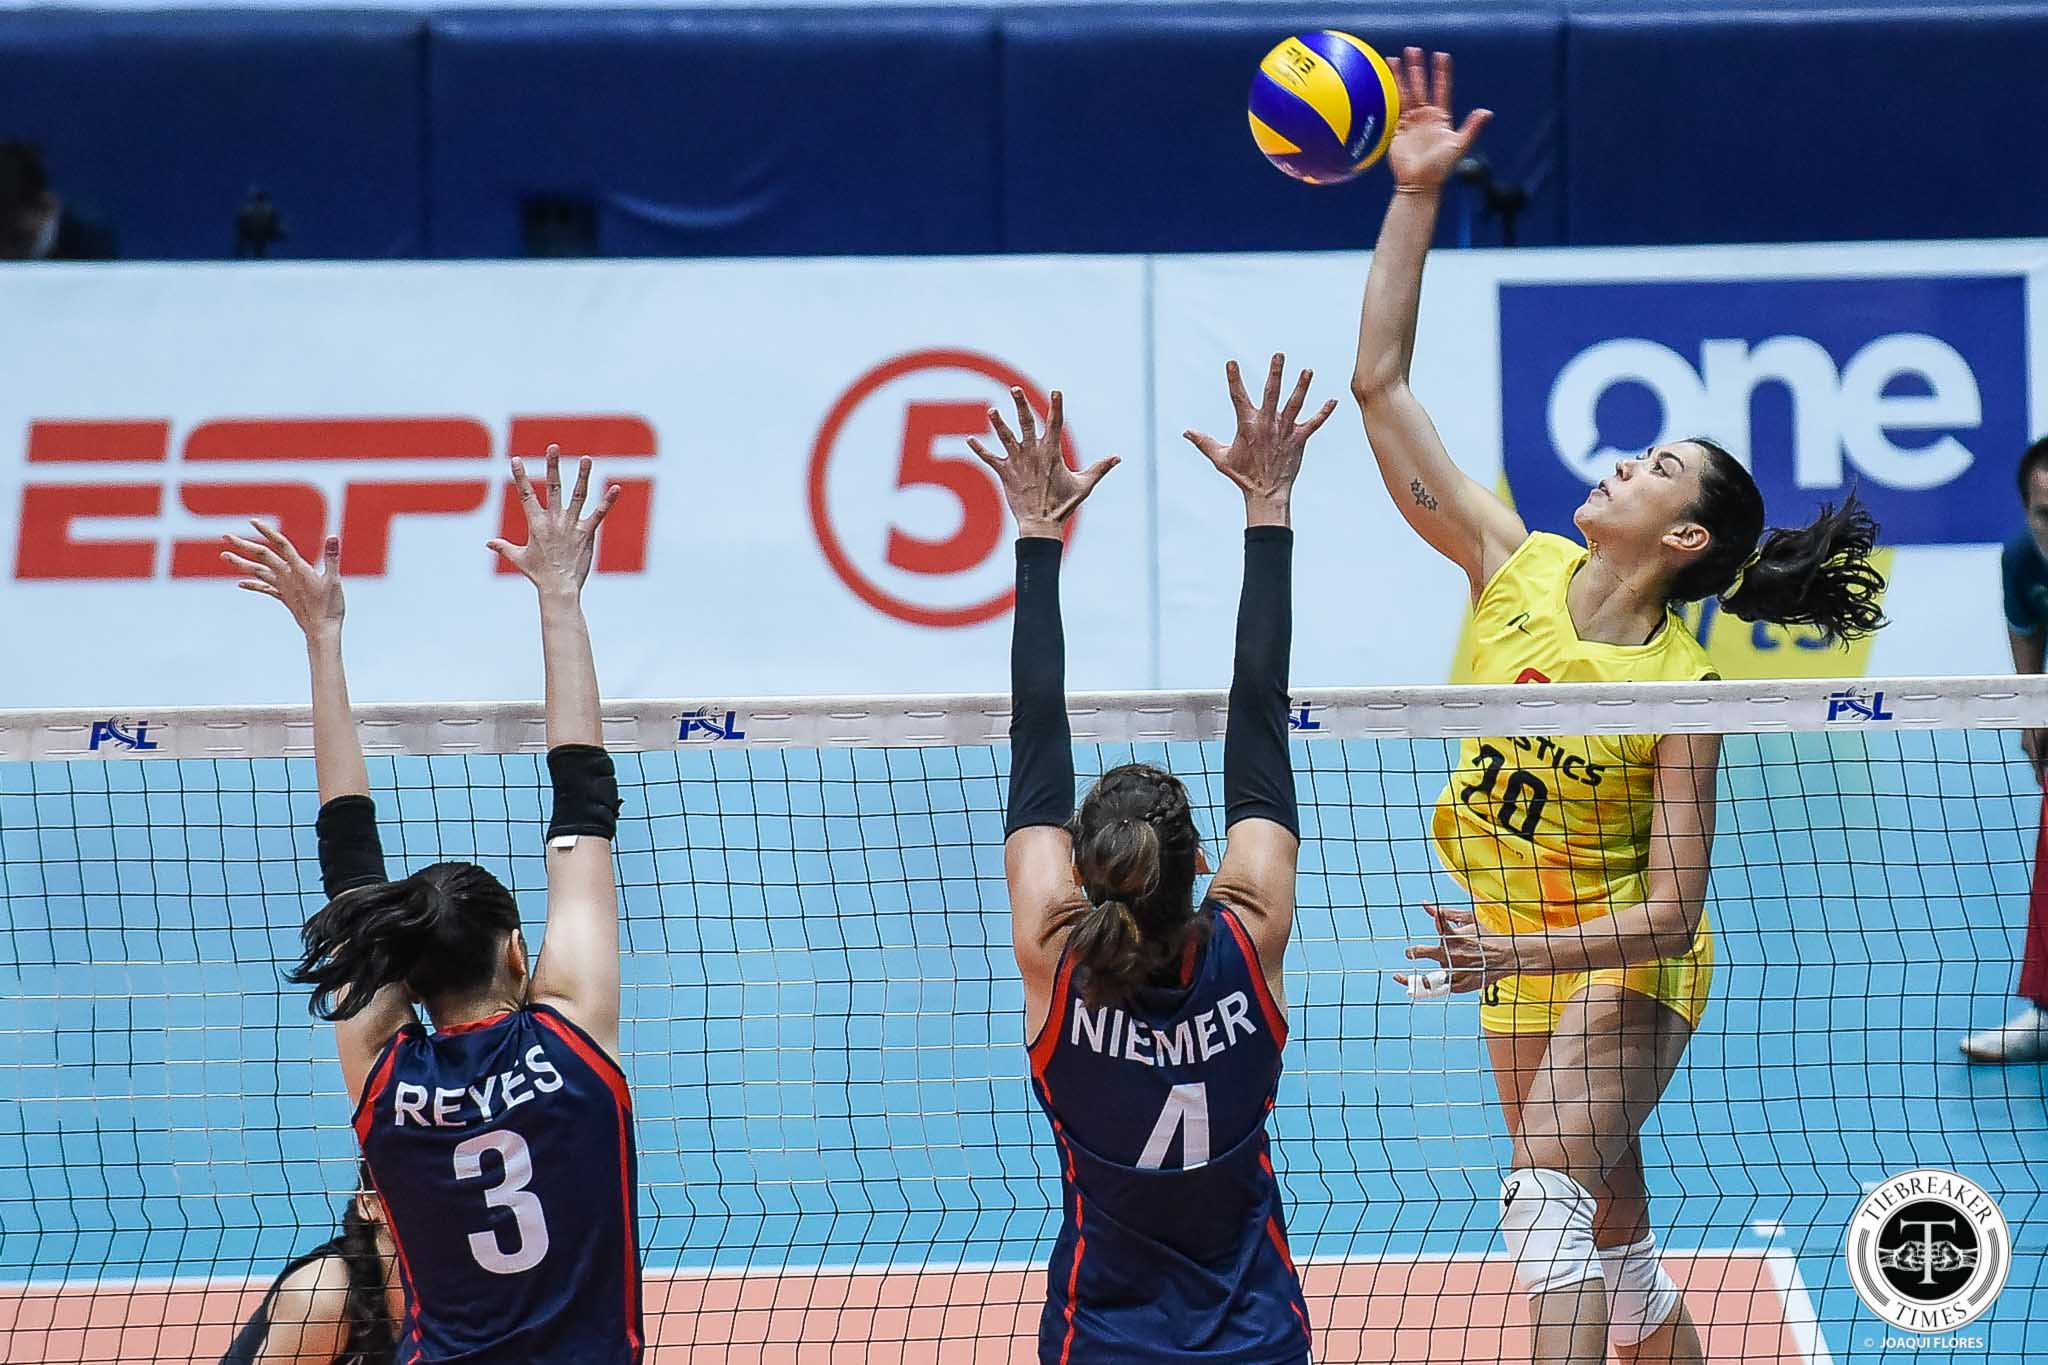 Tiebreaker Times Relief for Lindsay Stalzer after finally getting one over former team Petron News PSL Volleyball  Lindsay Stalzer F2 Logistics Cargo Movers 2019 PSL Season 2019 PSL Grand Prix